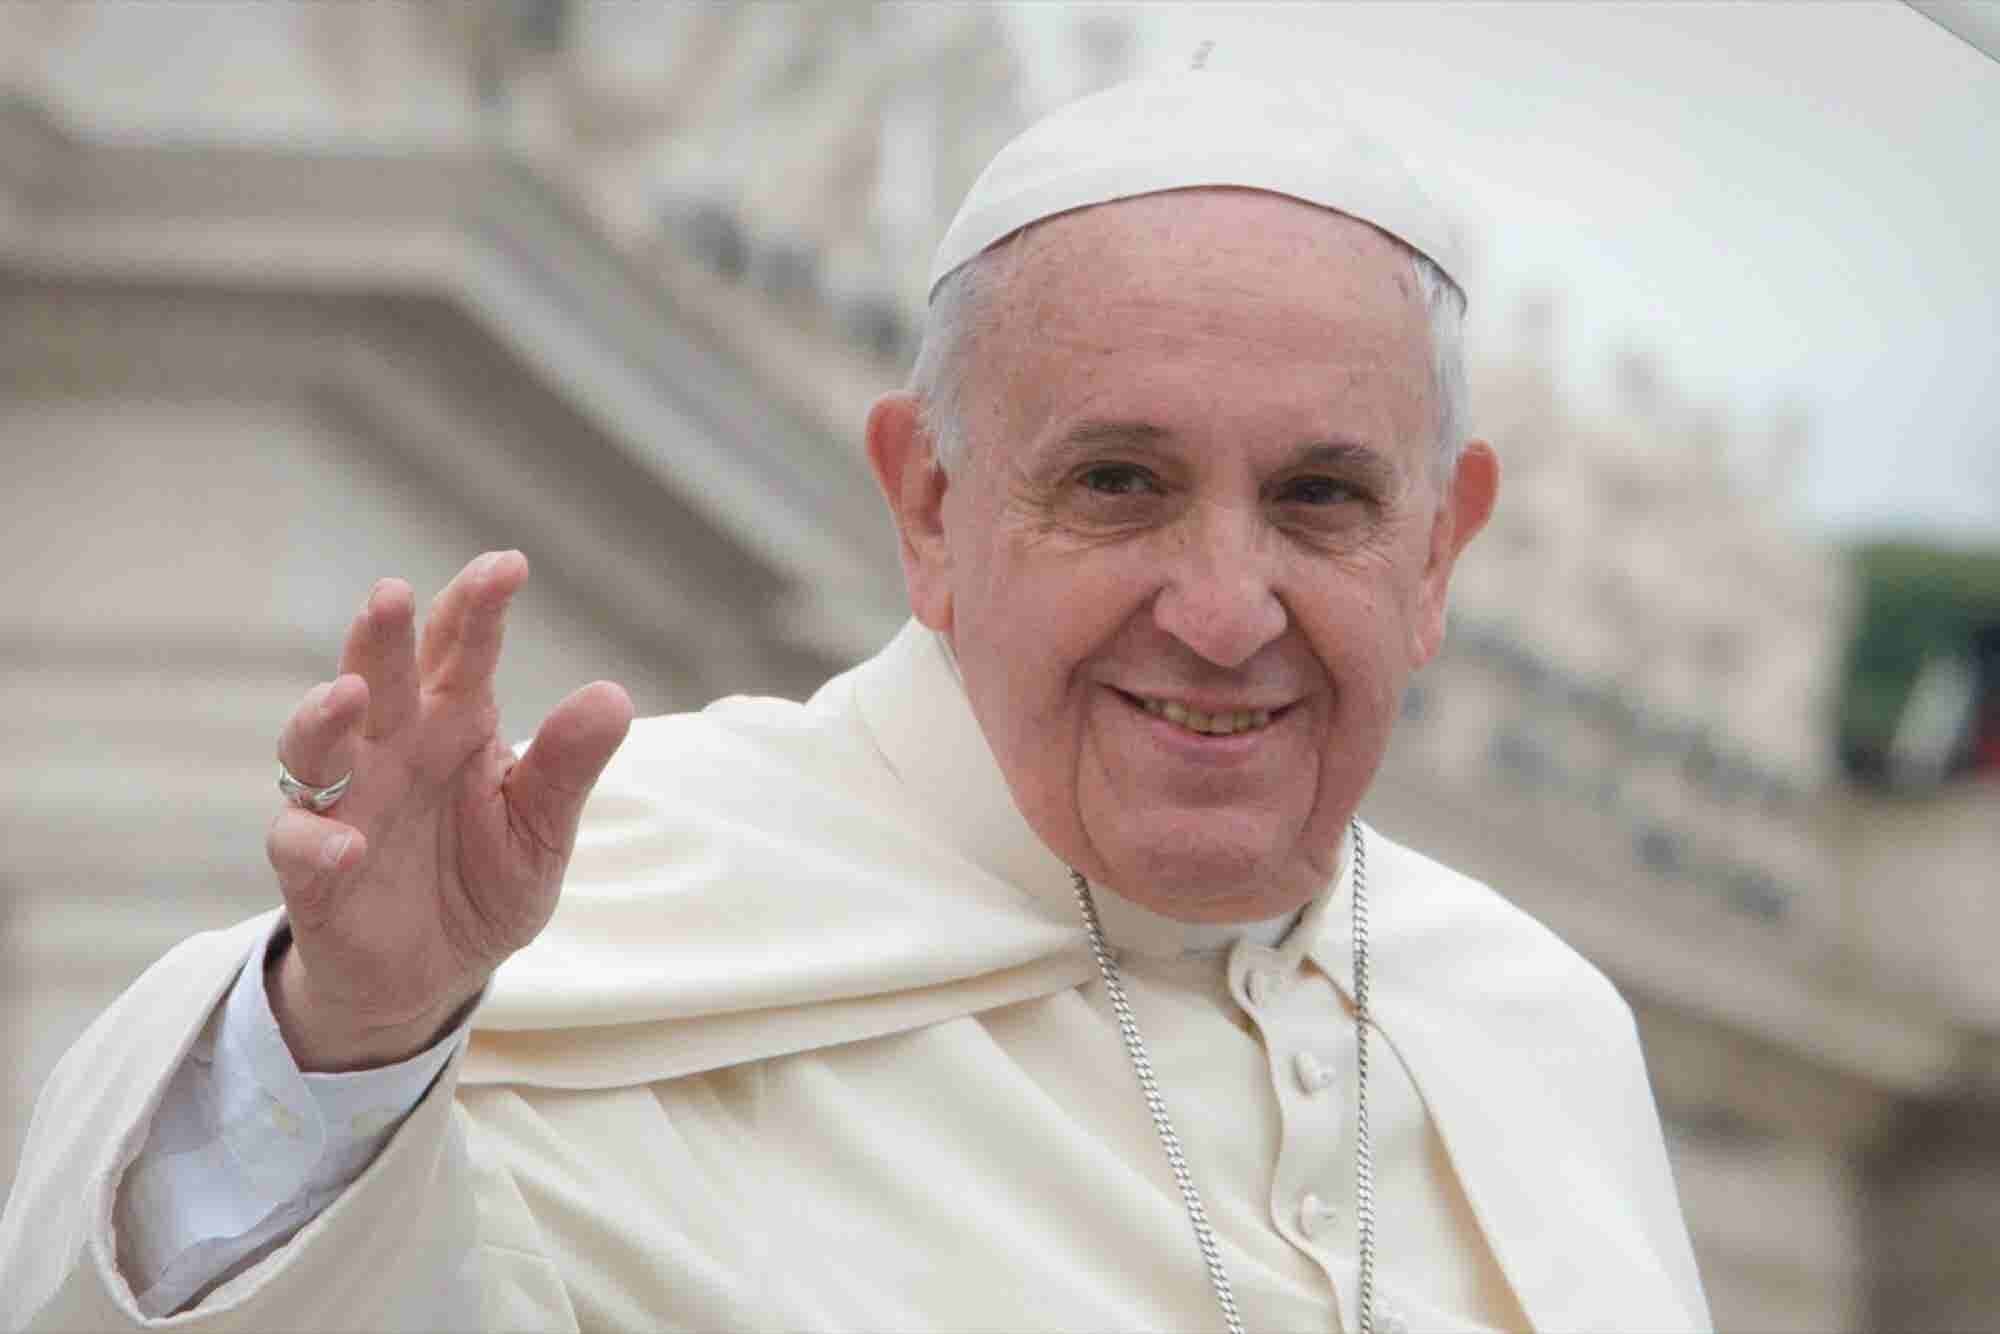 The Pope's Visit Could Delay New iPhone Deliveries in New York